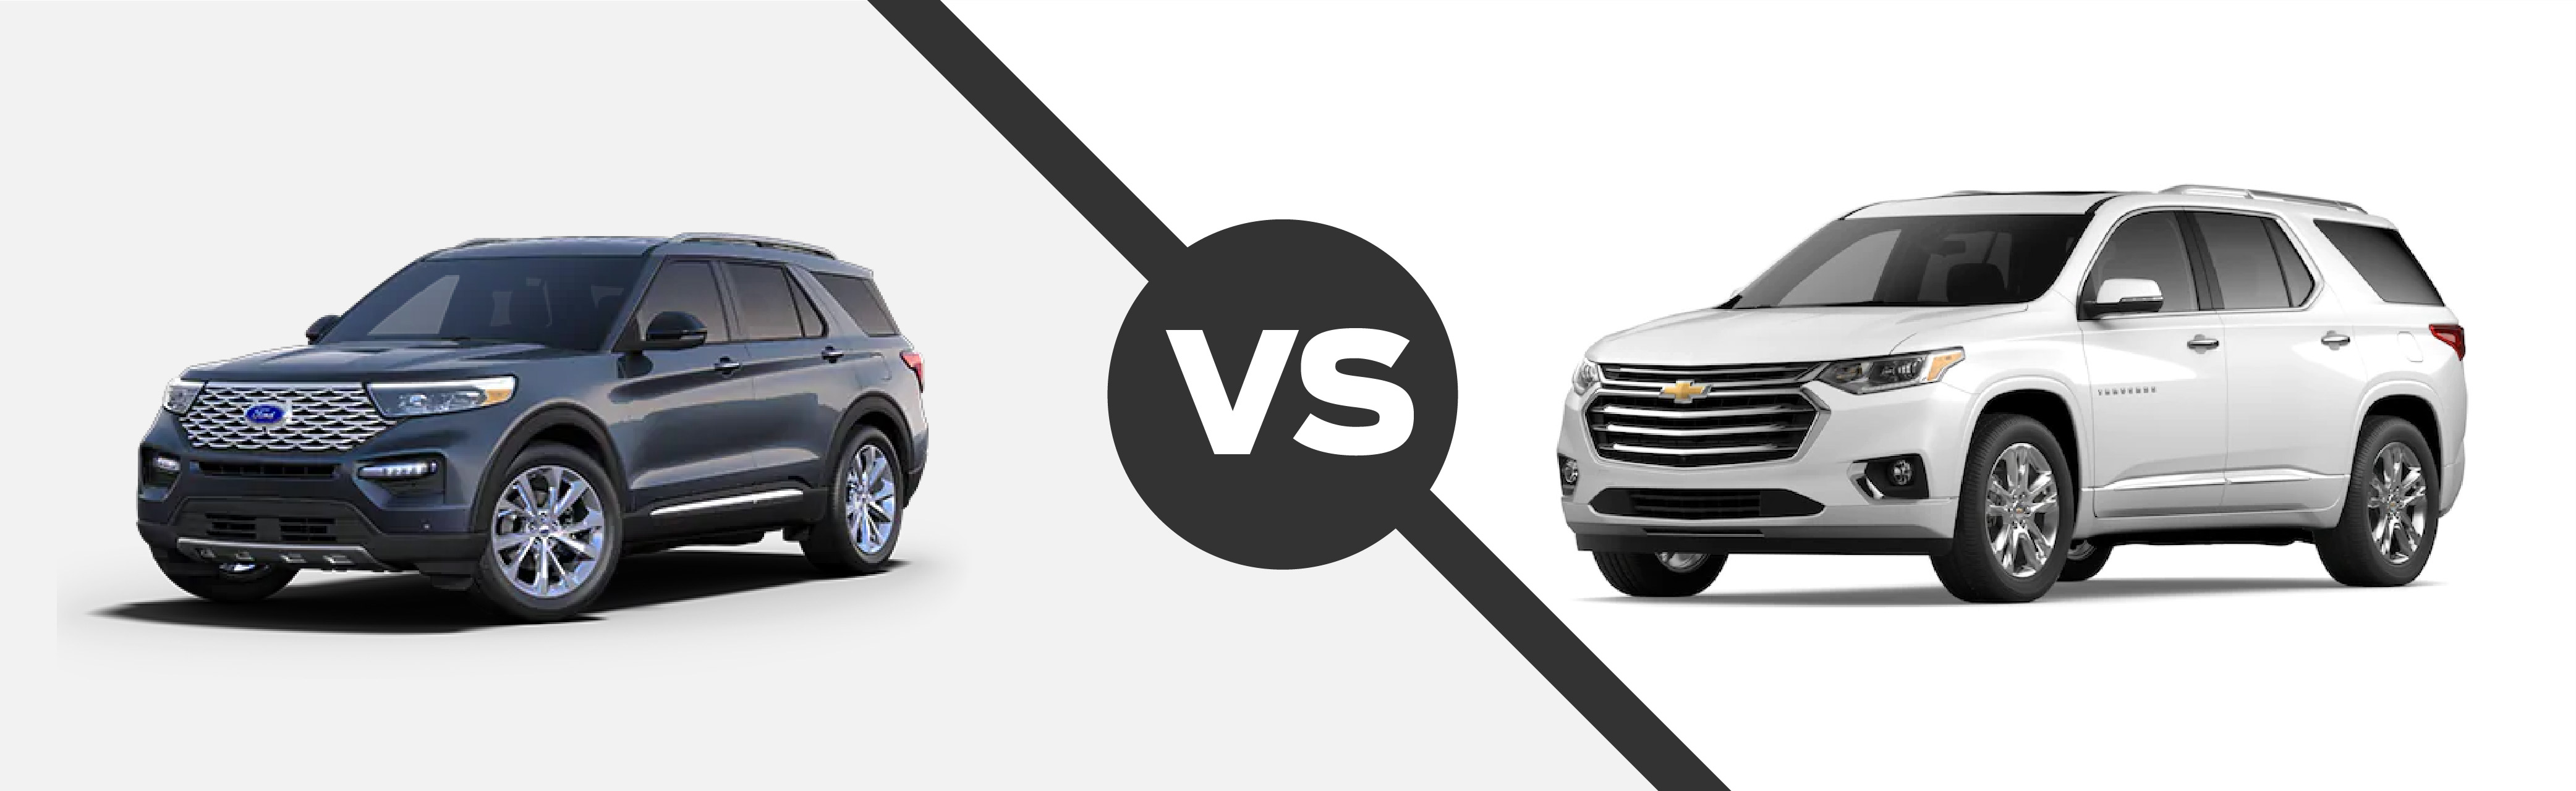 2021 Ford Explorer vs 2021 Chevrolet Traverse